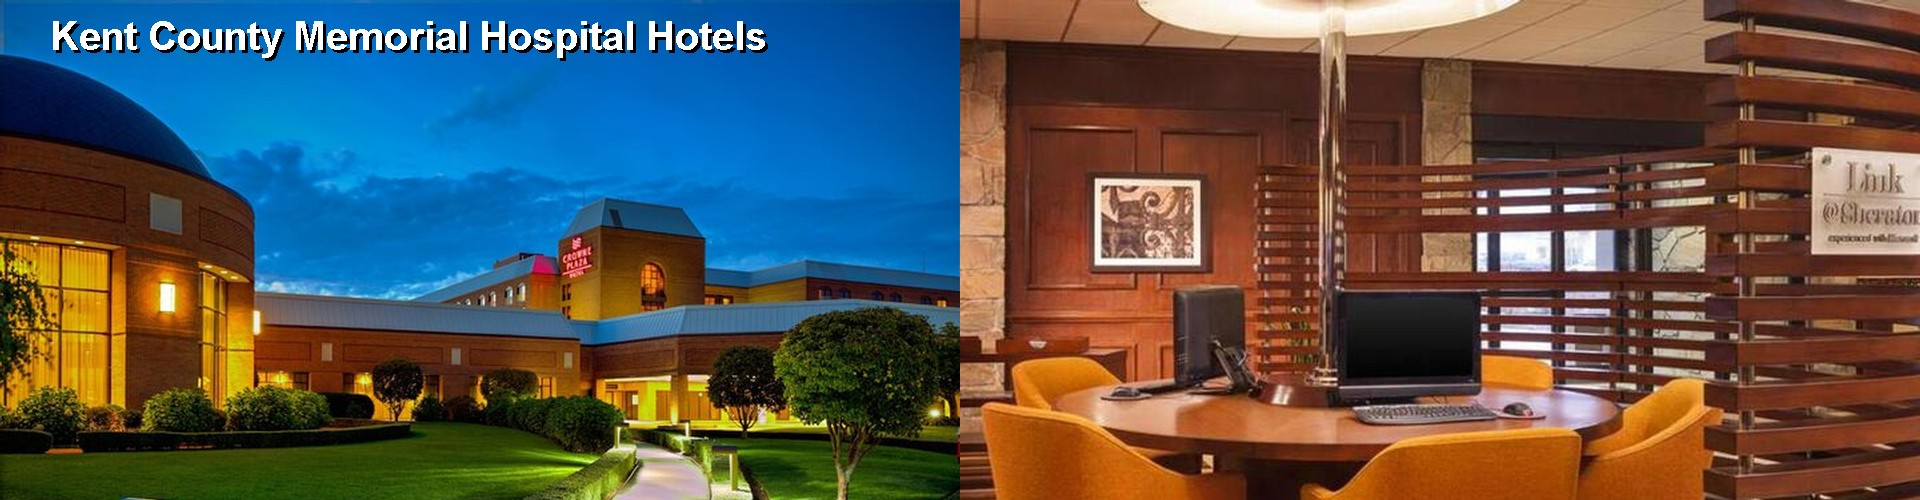 5 Best Hotels near Kent County Memorial Hospital